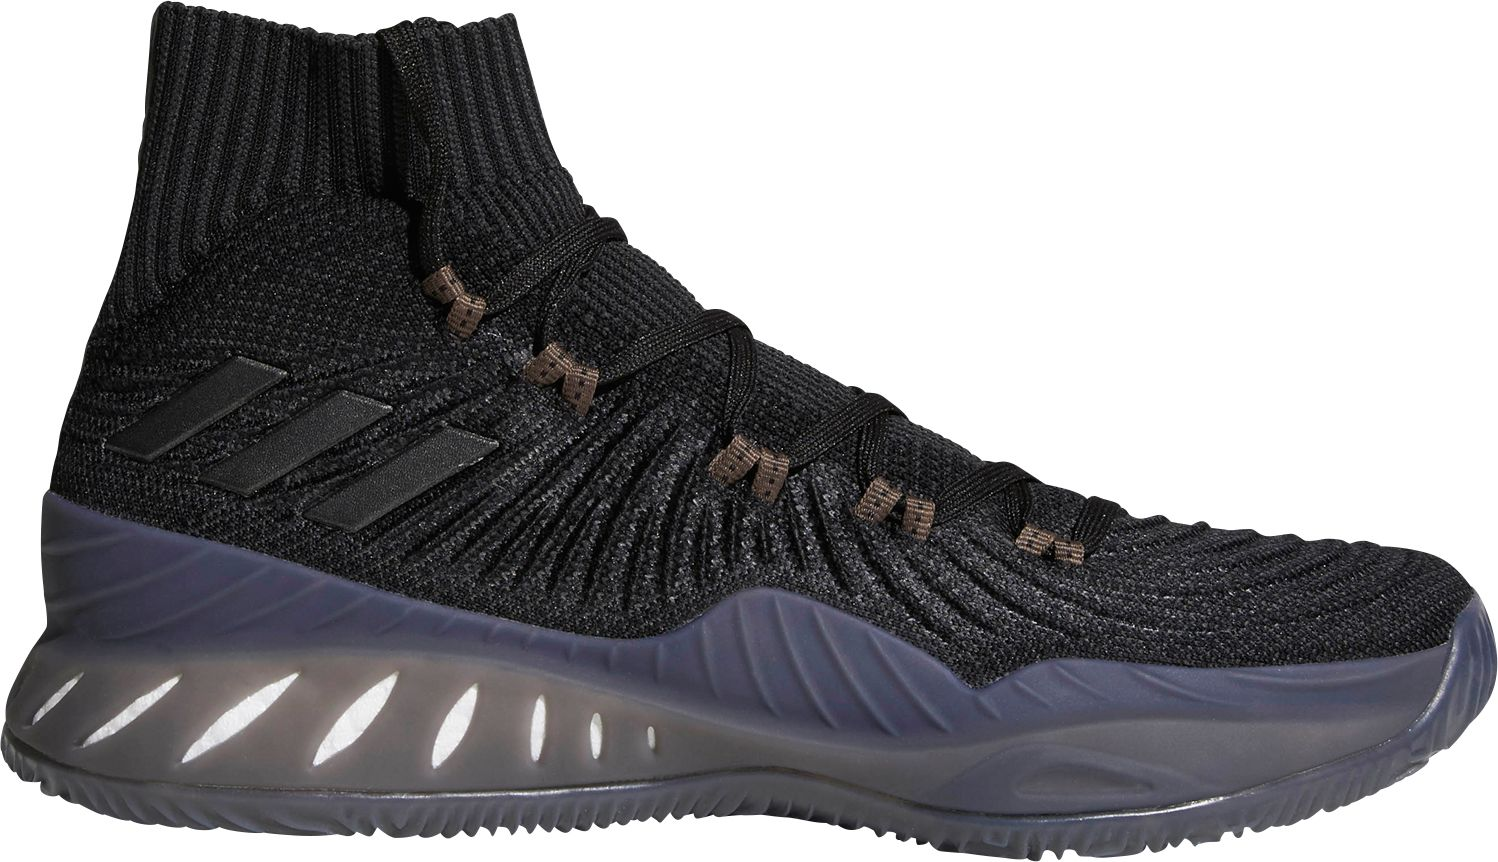 Adidas Crazy Explosive Basketball Shoes